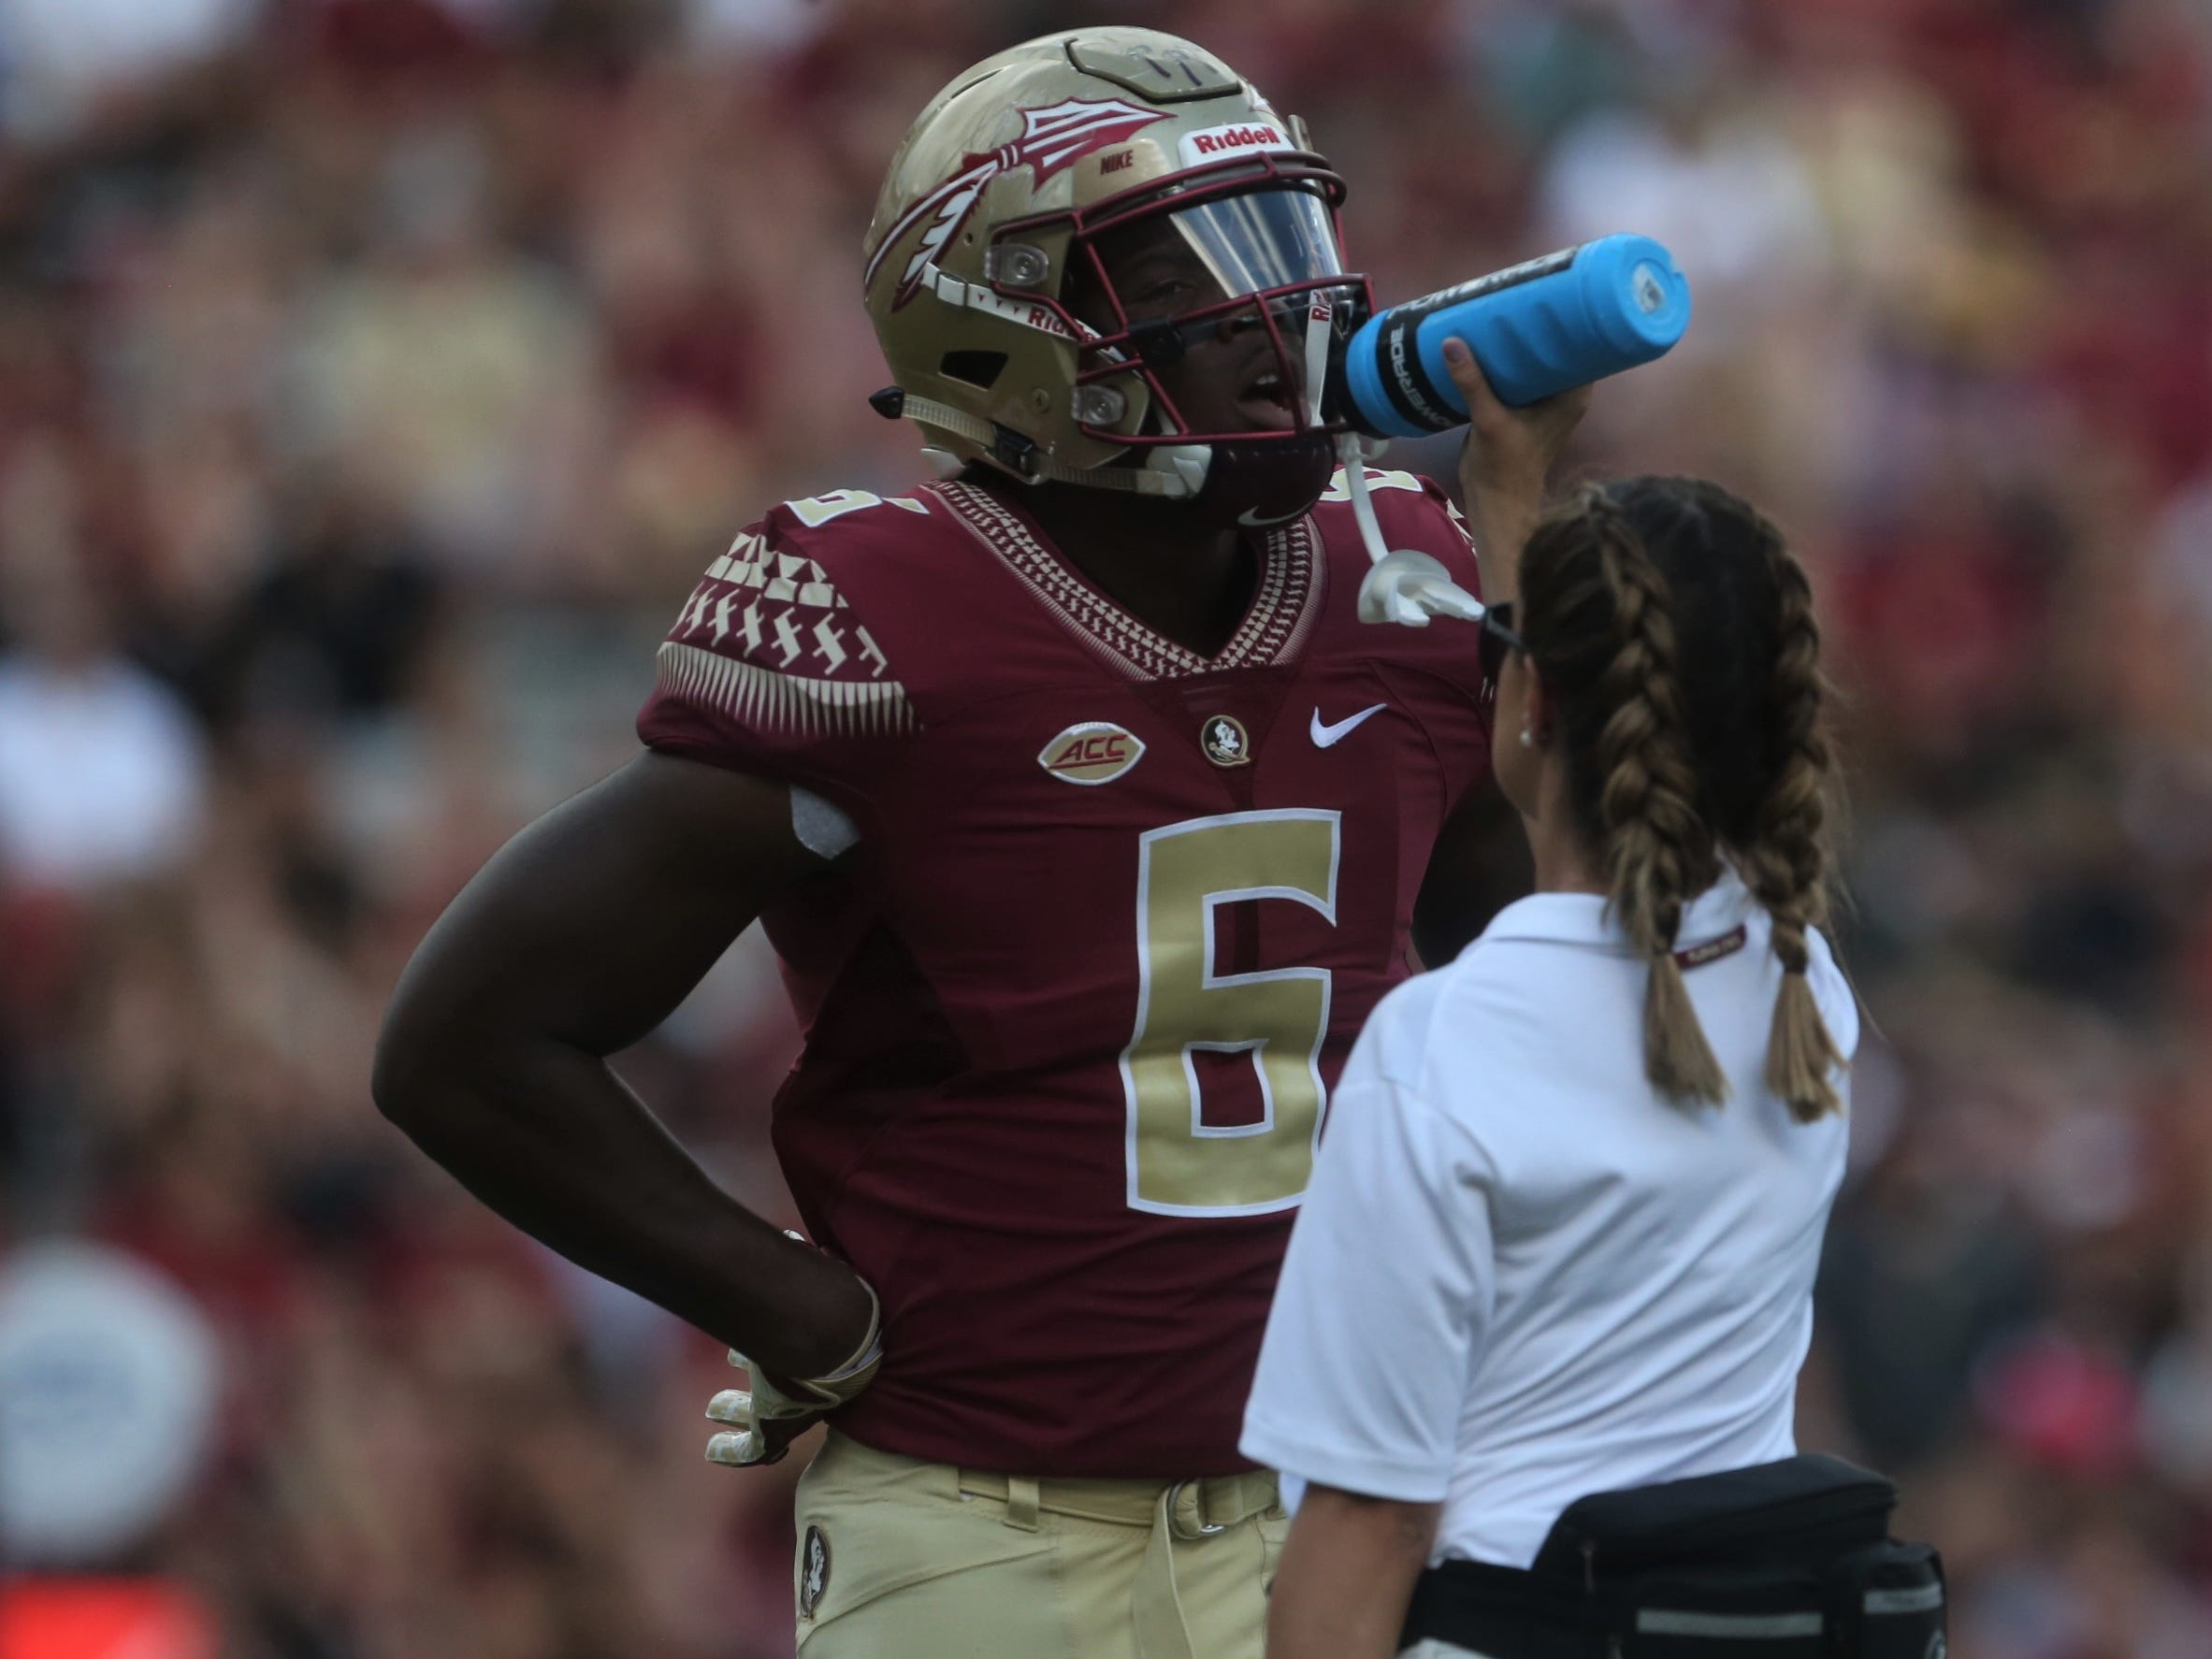 Florida State tight end Tre' McKitty gets some high-quality H2O during a game against Wake Forest at Doak Campbell Stadium on Saturday, Oct. 20, 2018.